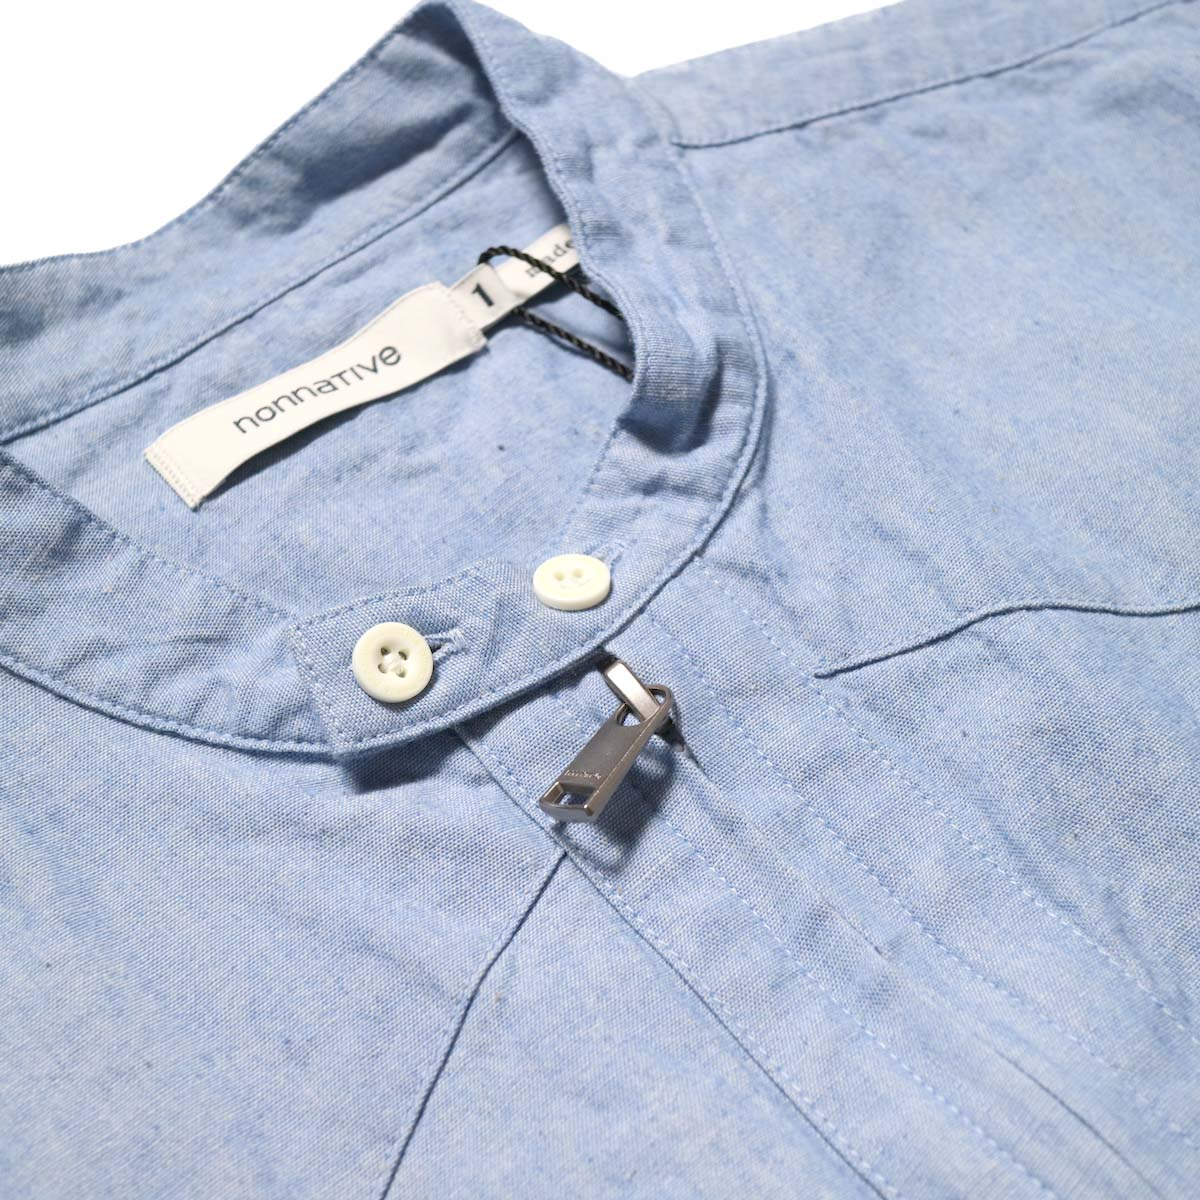 nonnative / RANCHER PULLOVER SHIRT RELAXED FIT COTTON 5oz CHAMBRAY (Sax)襟